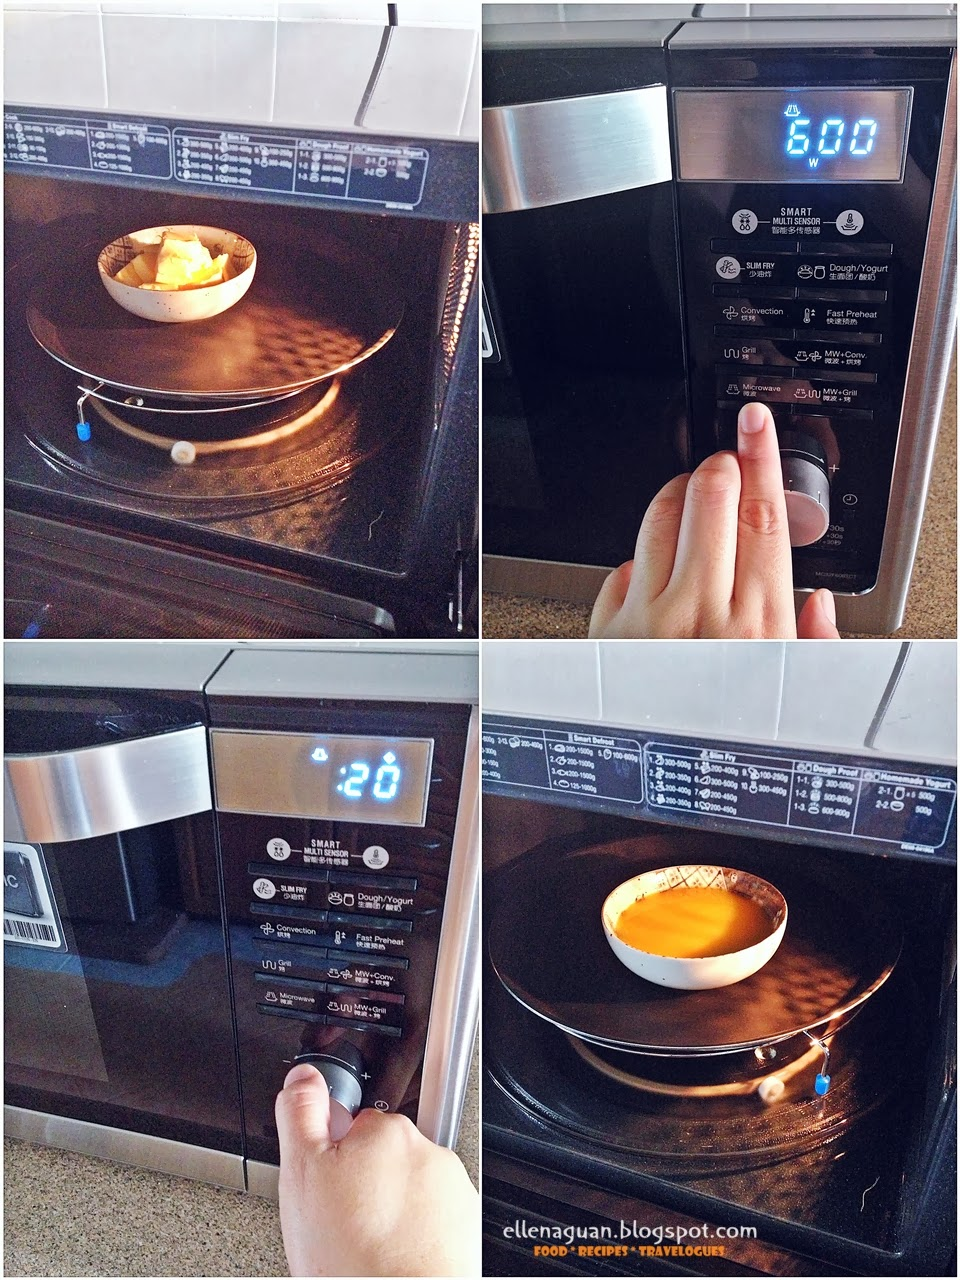 How To Bake A Cake In Samsung Microwave Convection Oven